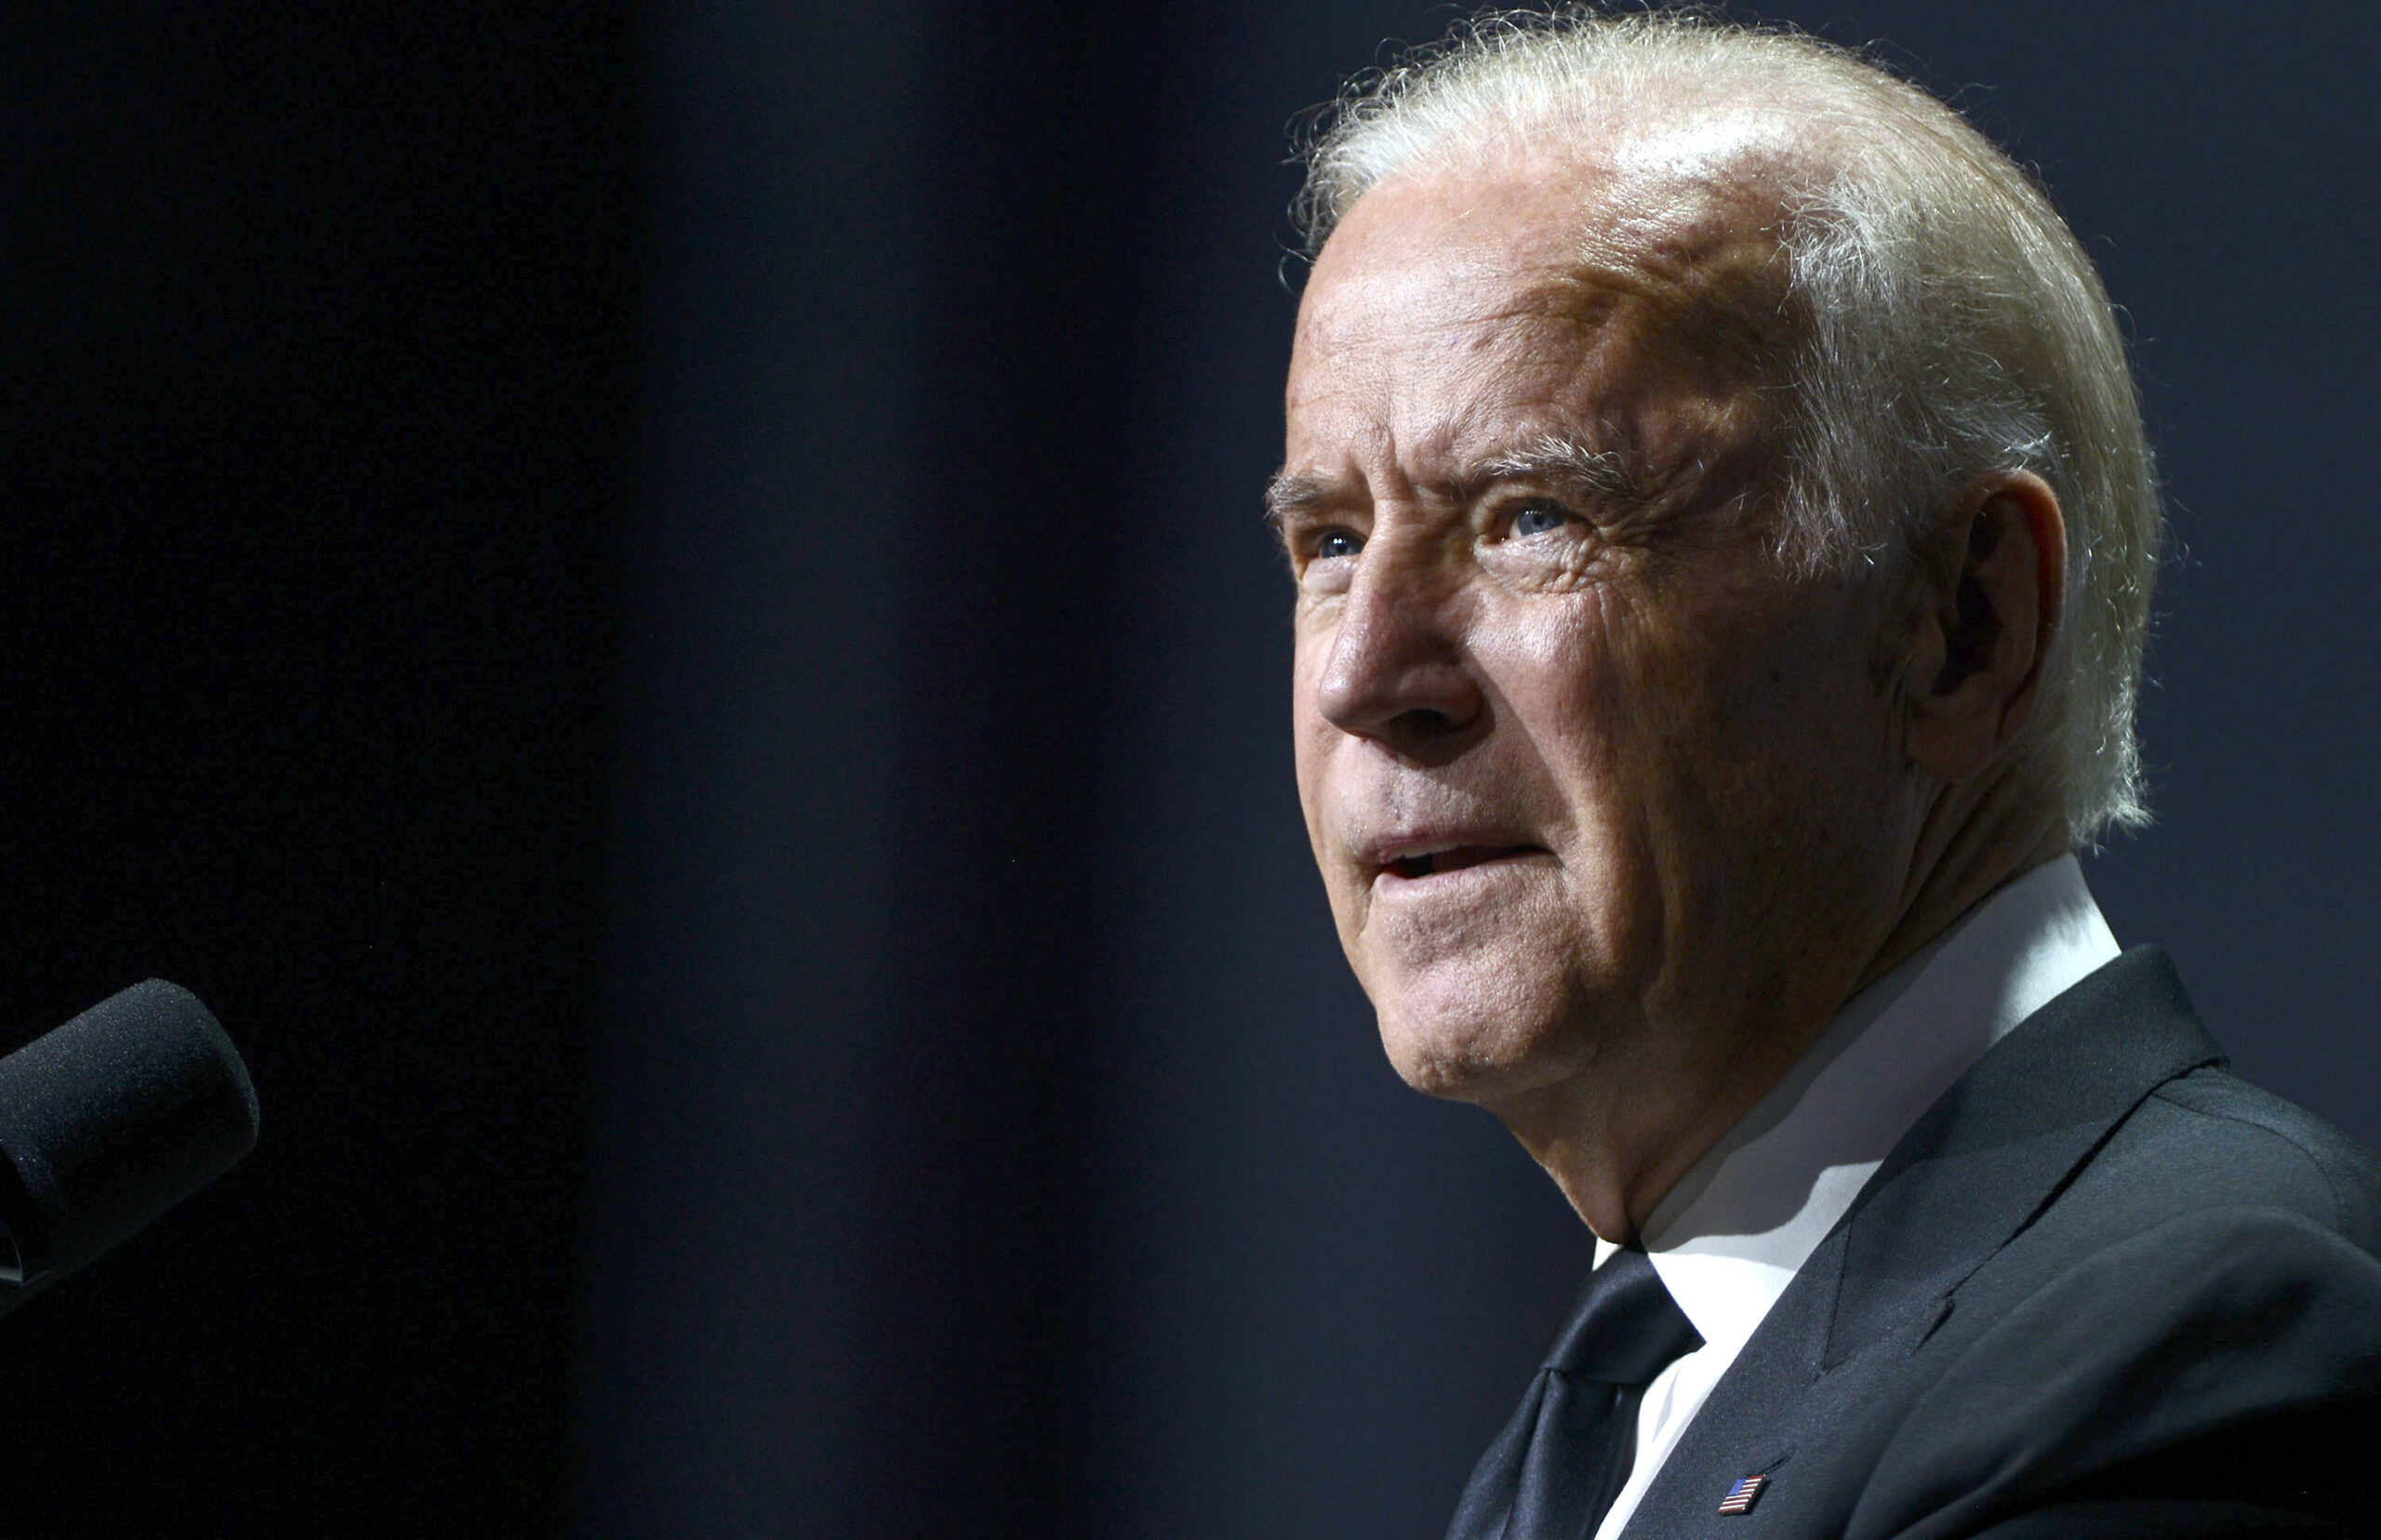 BREAKING: Joe Biden Elected 46th President of the United States, Decision Desk HQ Projects